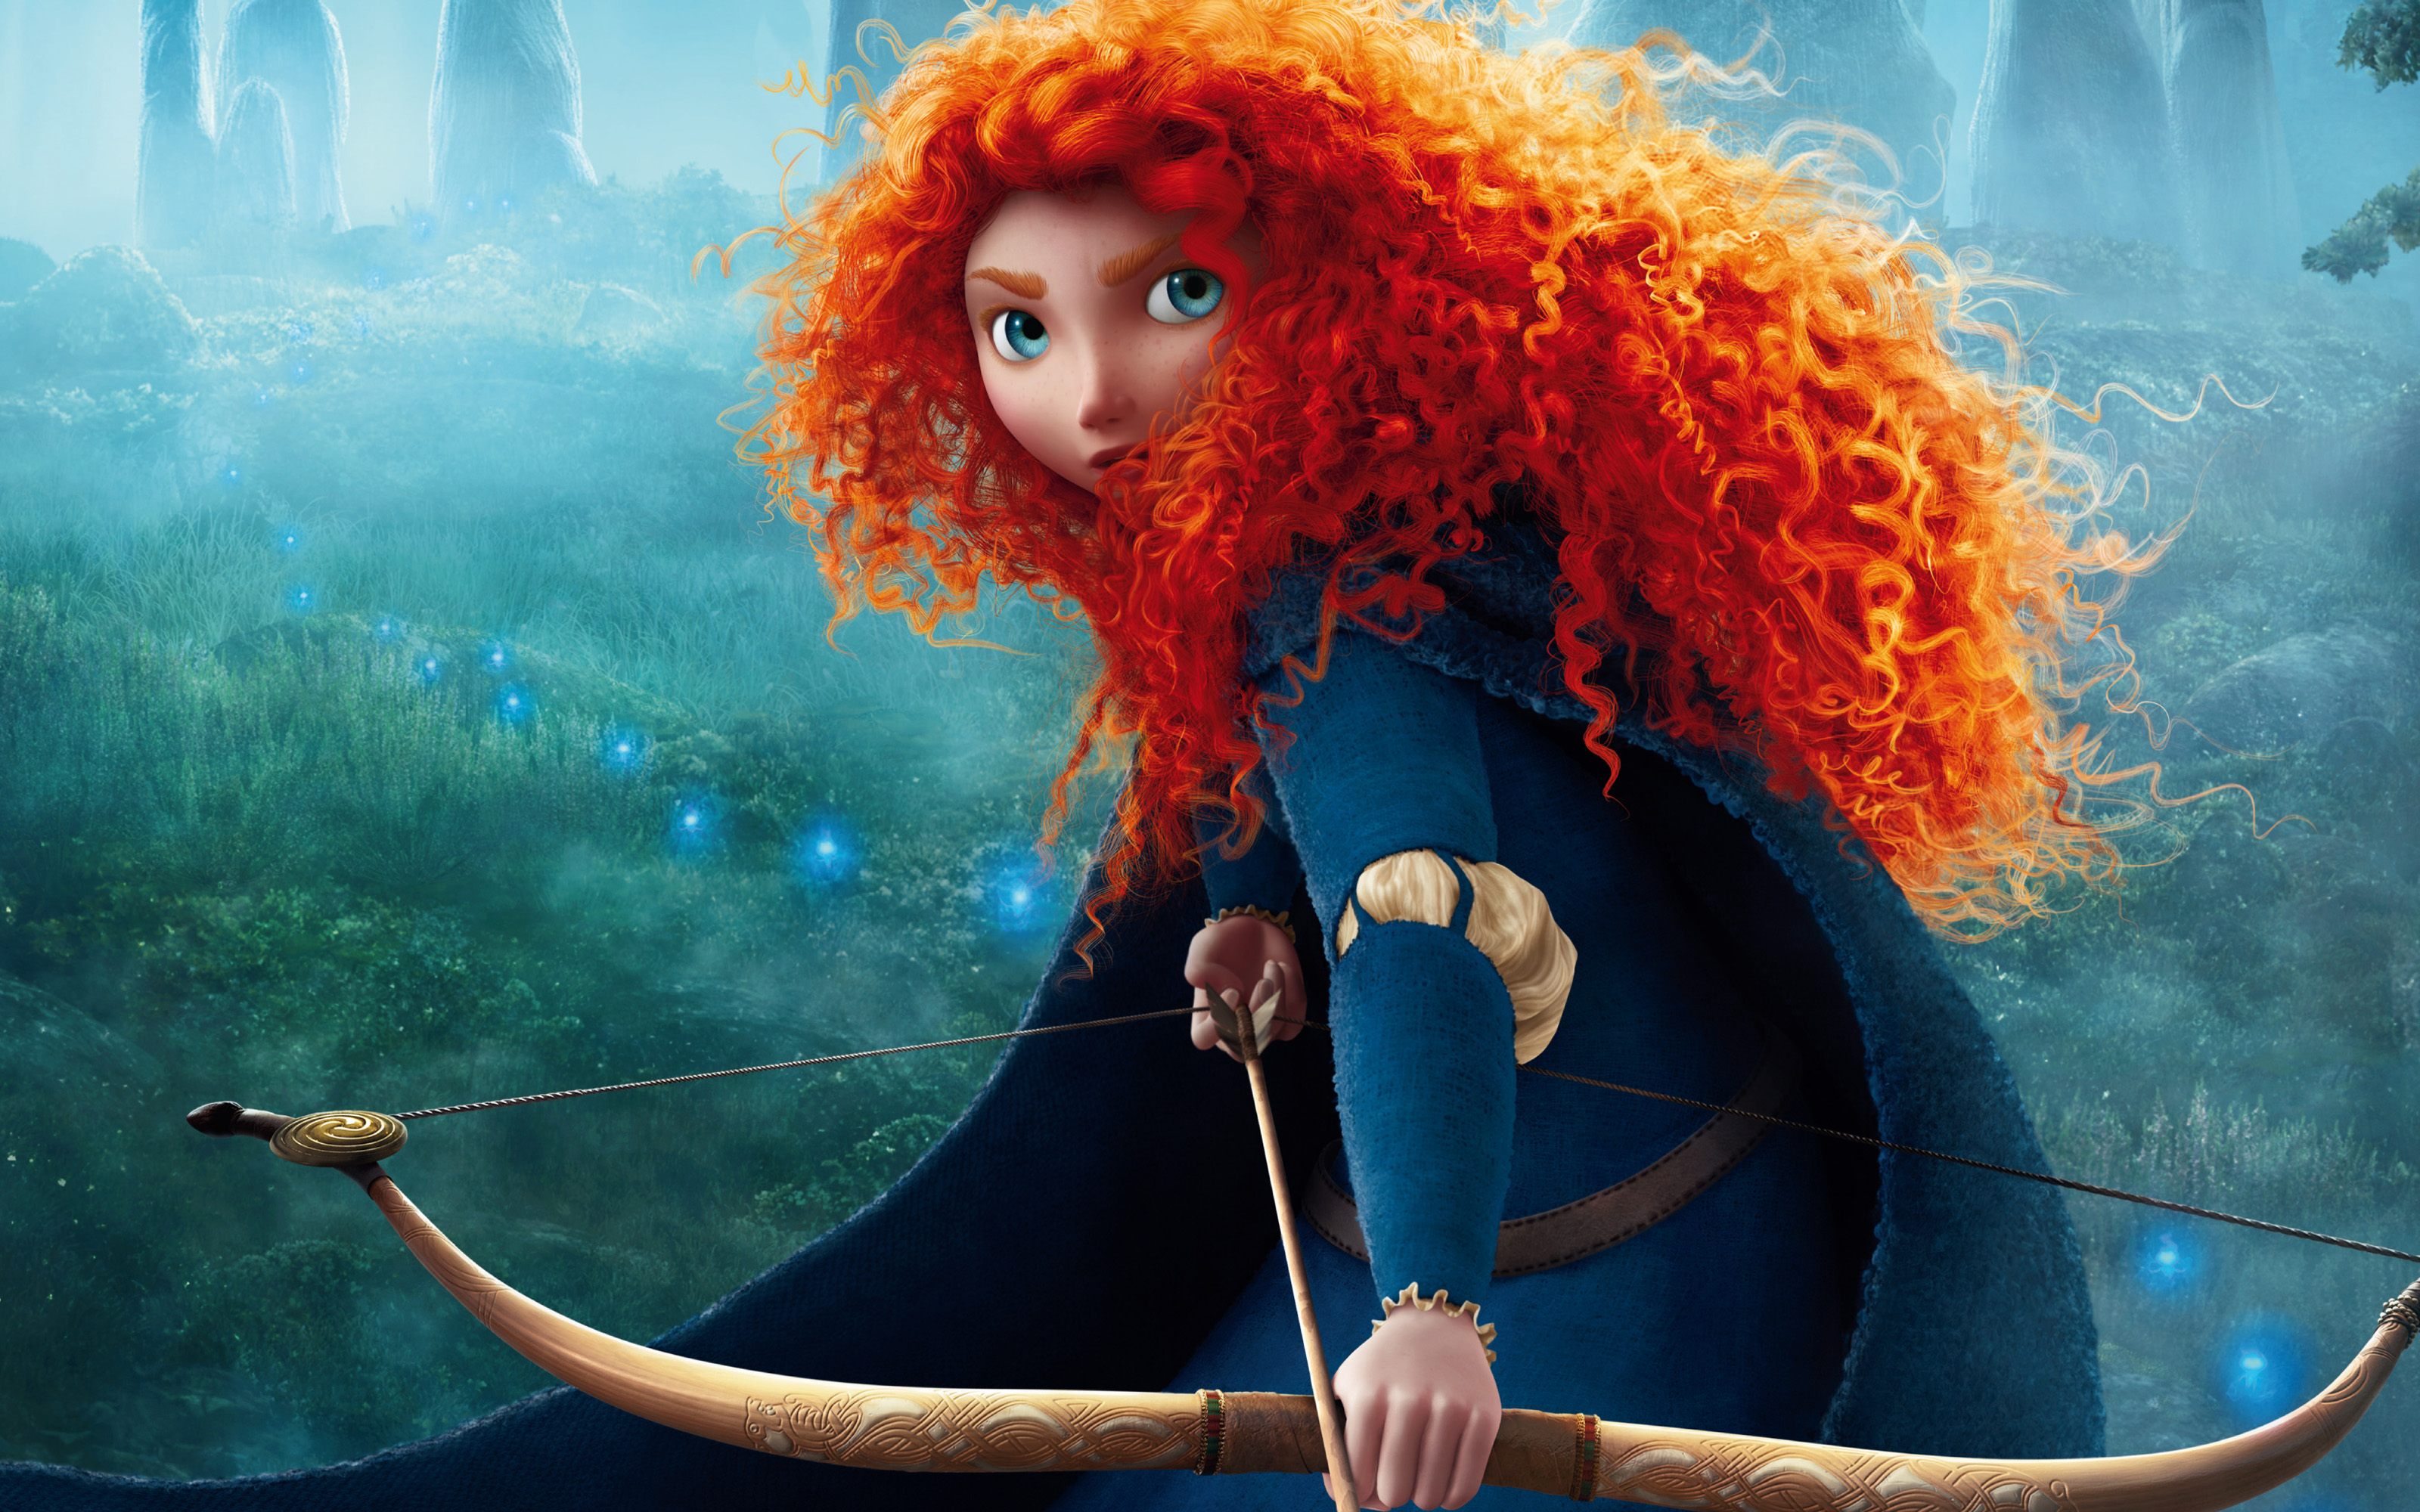 Brave's Princess Merida 505.85 Kb